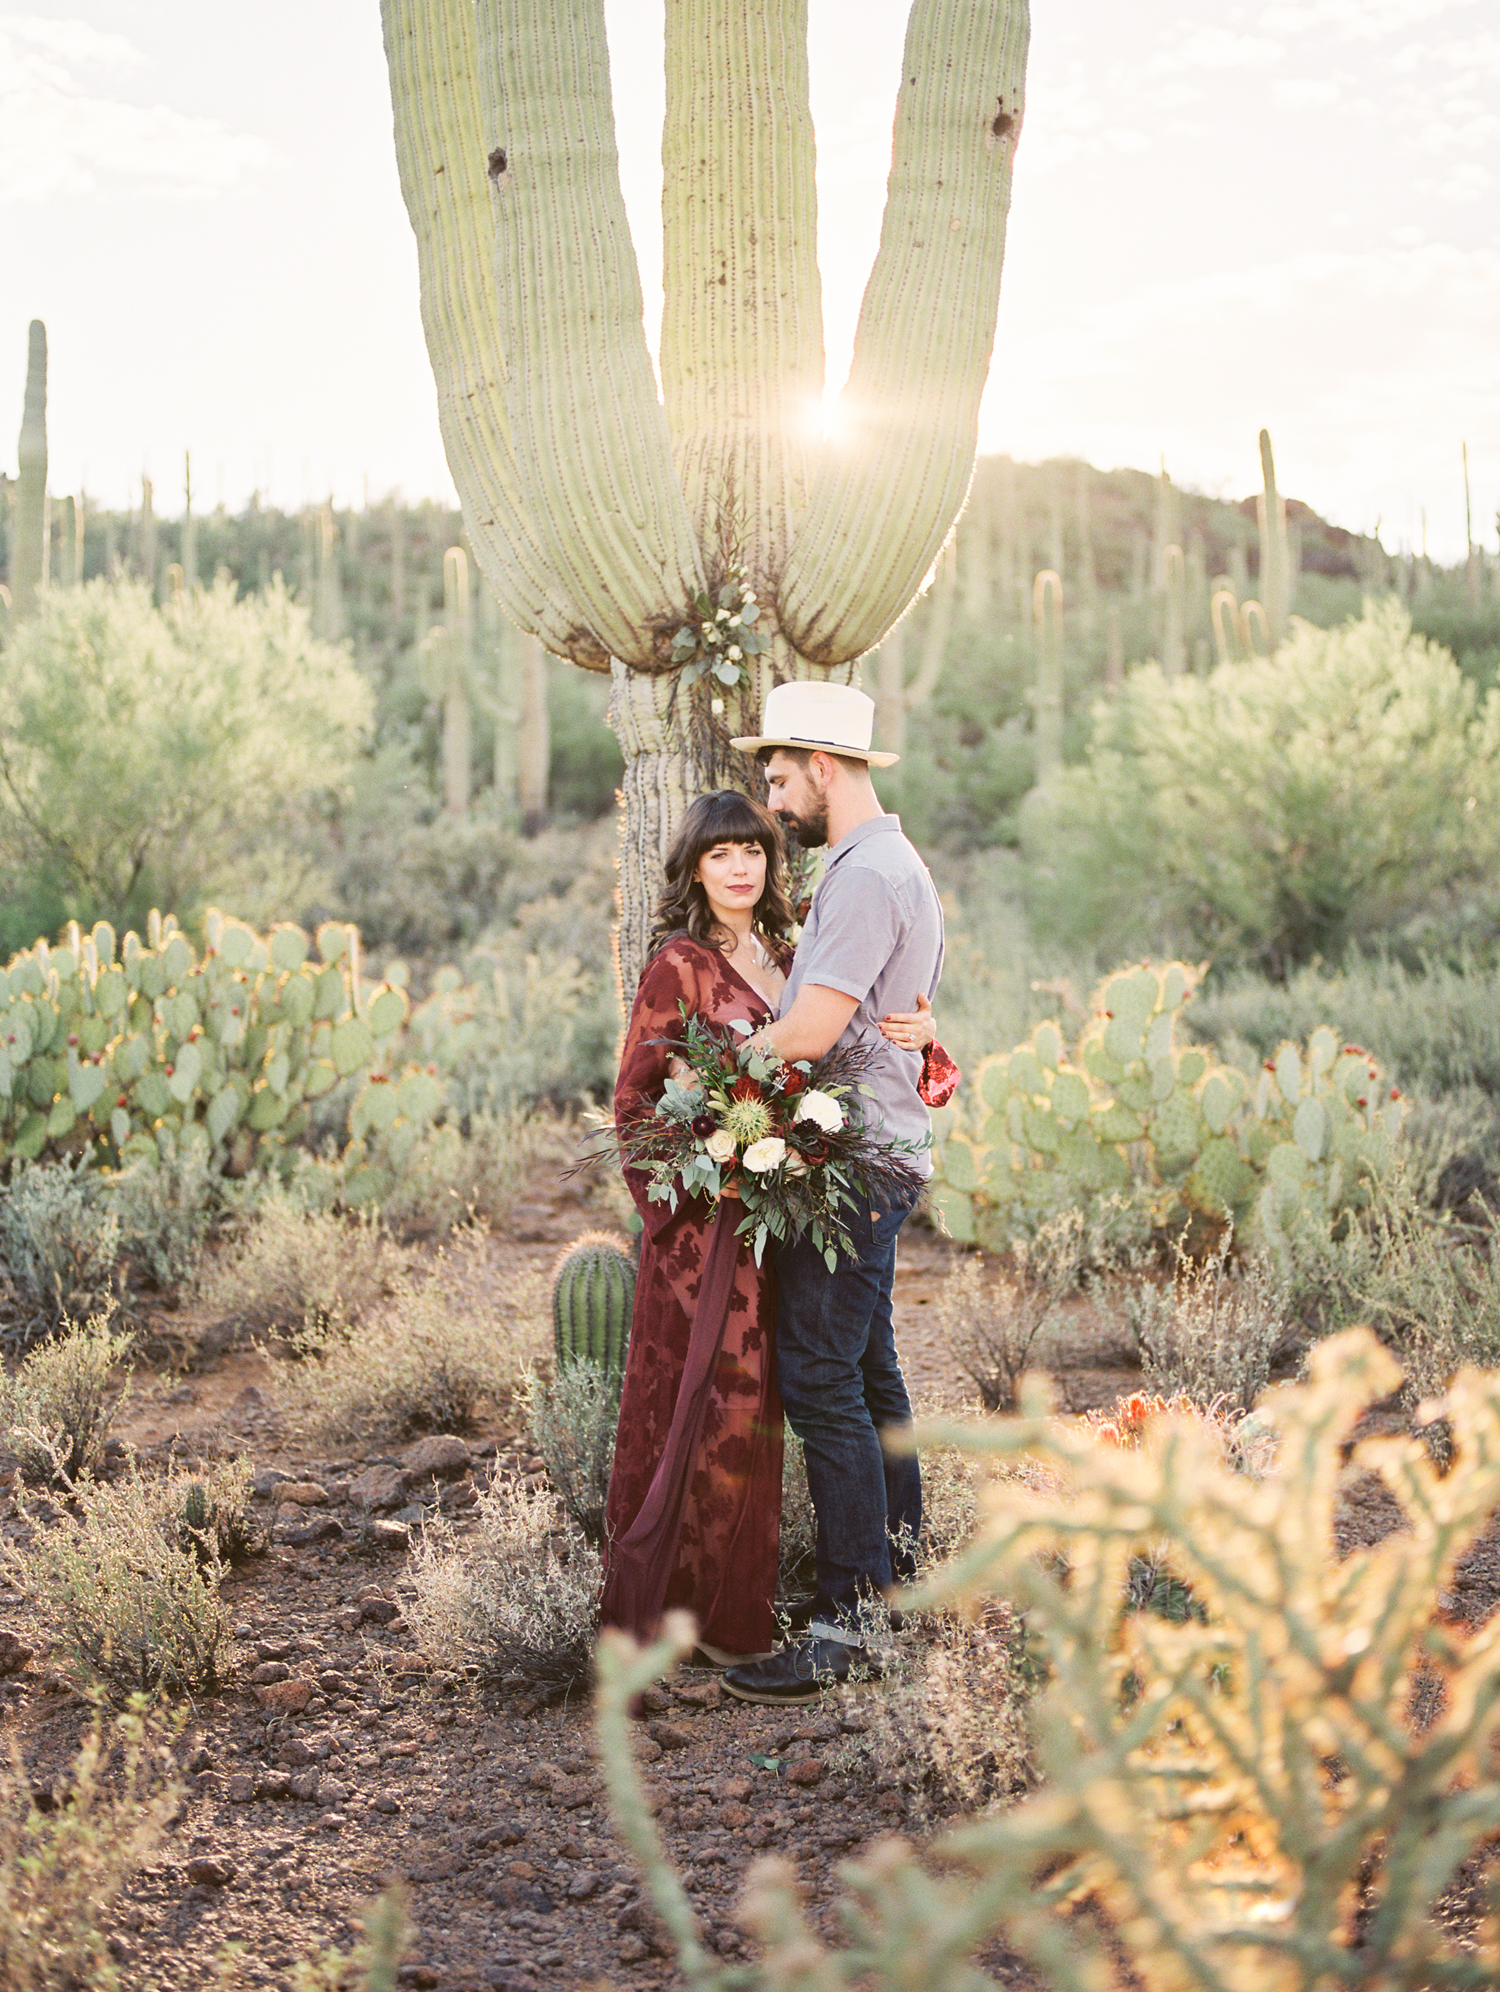 hip couple standing in front of a saguaro